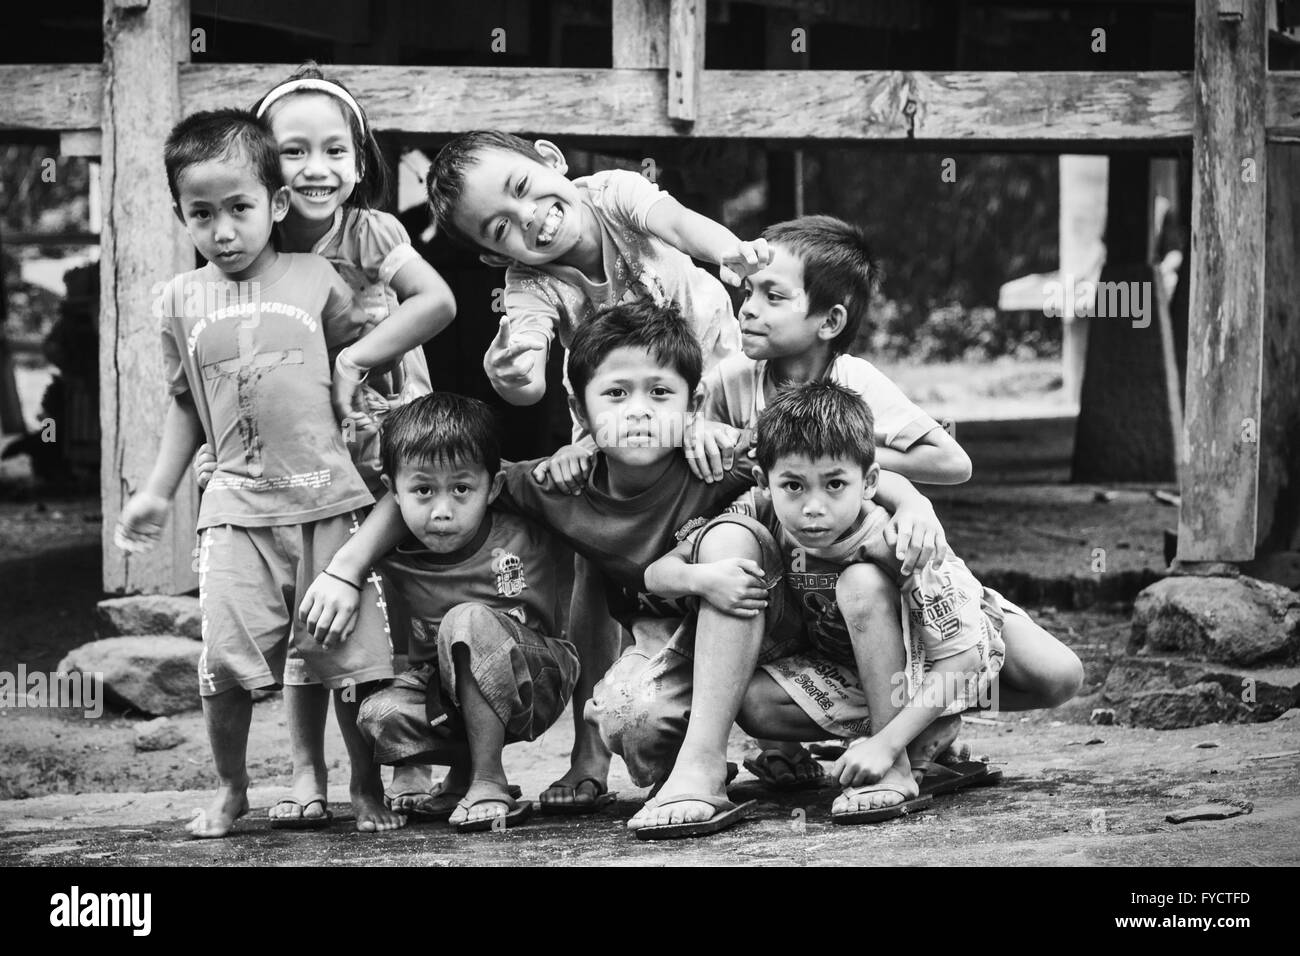 Group of cheerful children laugh and smile for a candid photograph outside a Tongkonan house in Sulawesi, Indonesia - Stock Image